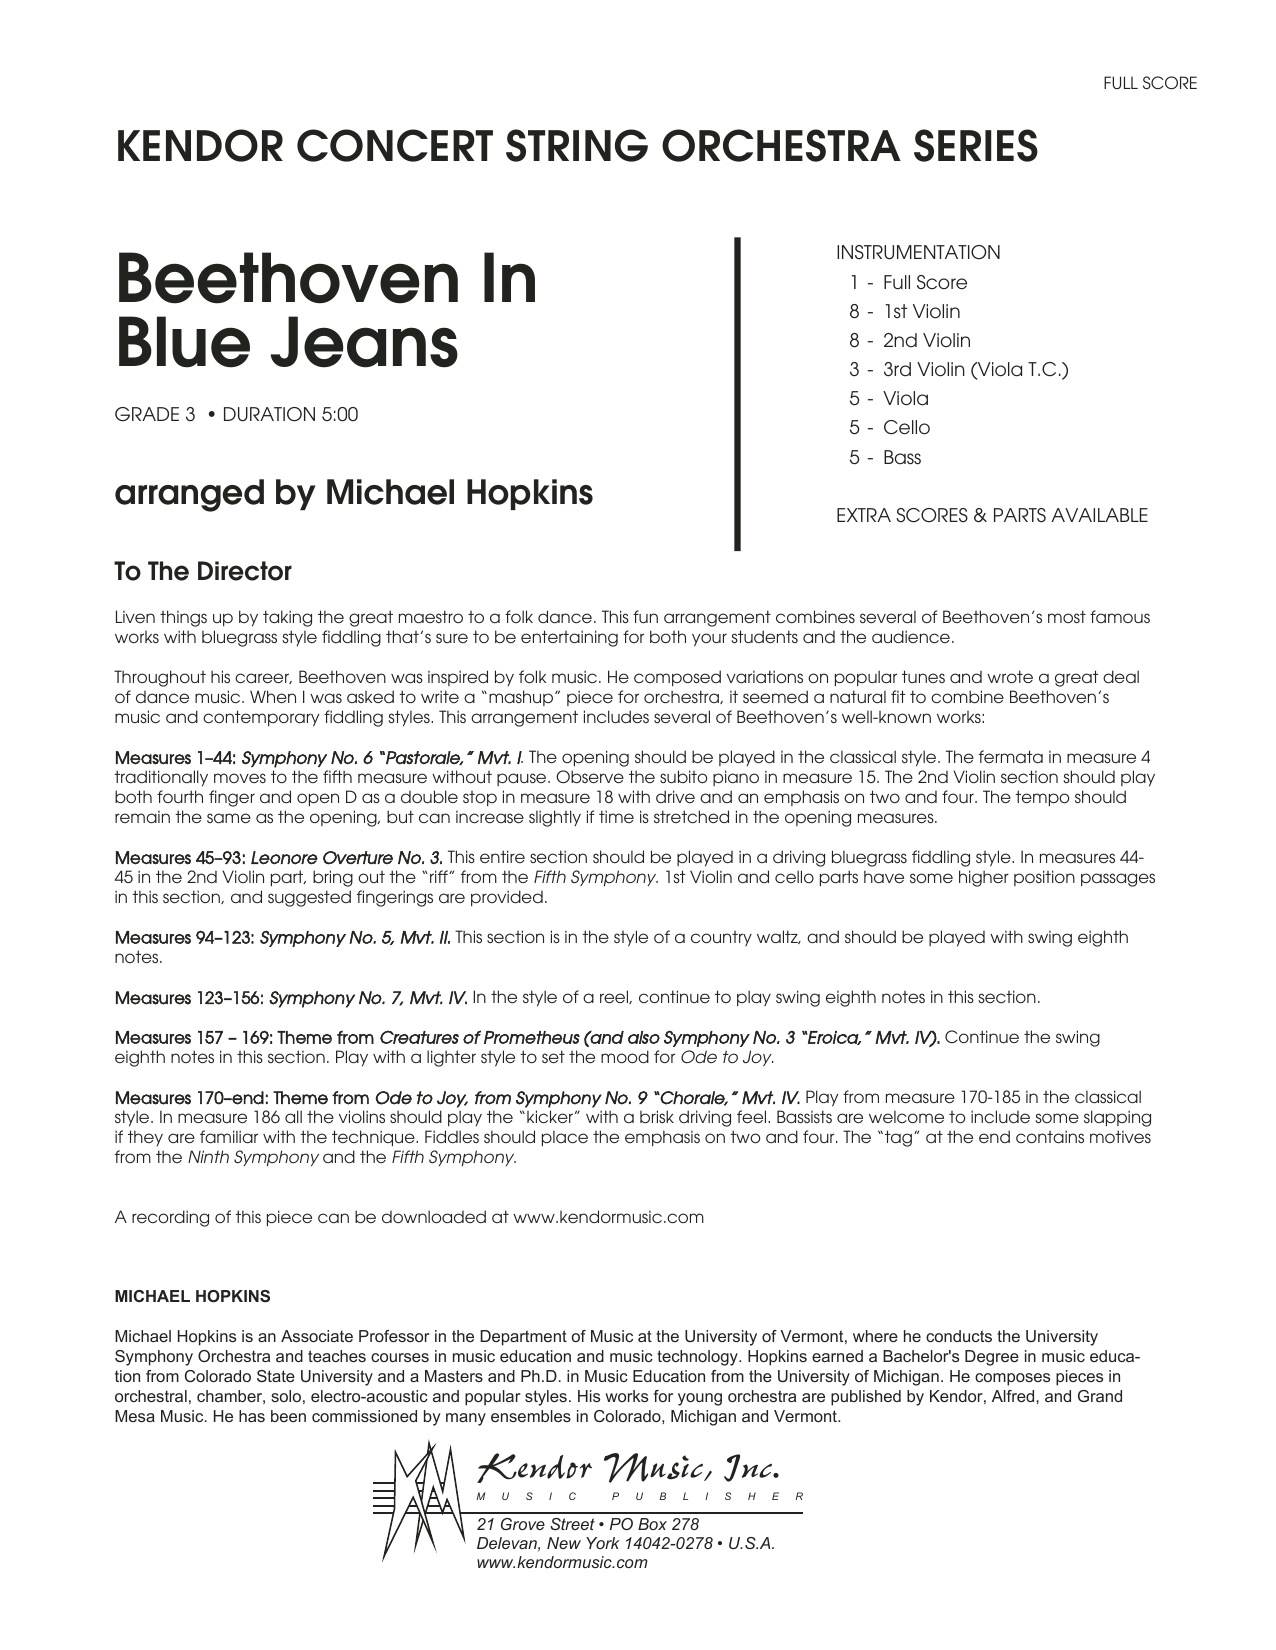 Beethoven In Blue Jeans (COMPLETE) sheet music for orchestra by Ludwig van Beethoven and Michael Hopkins. Score Image Preview.